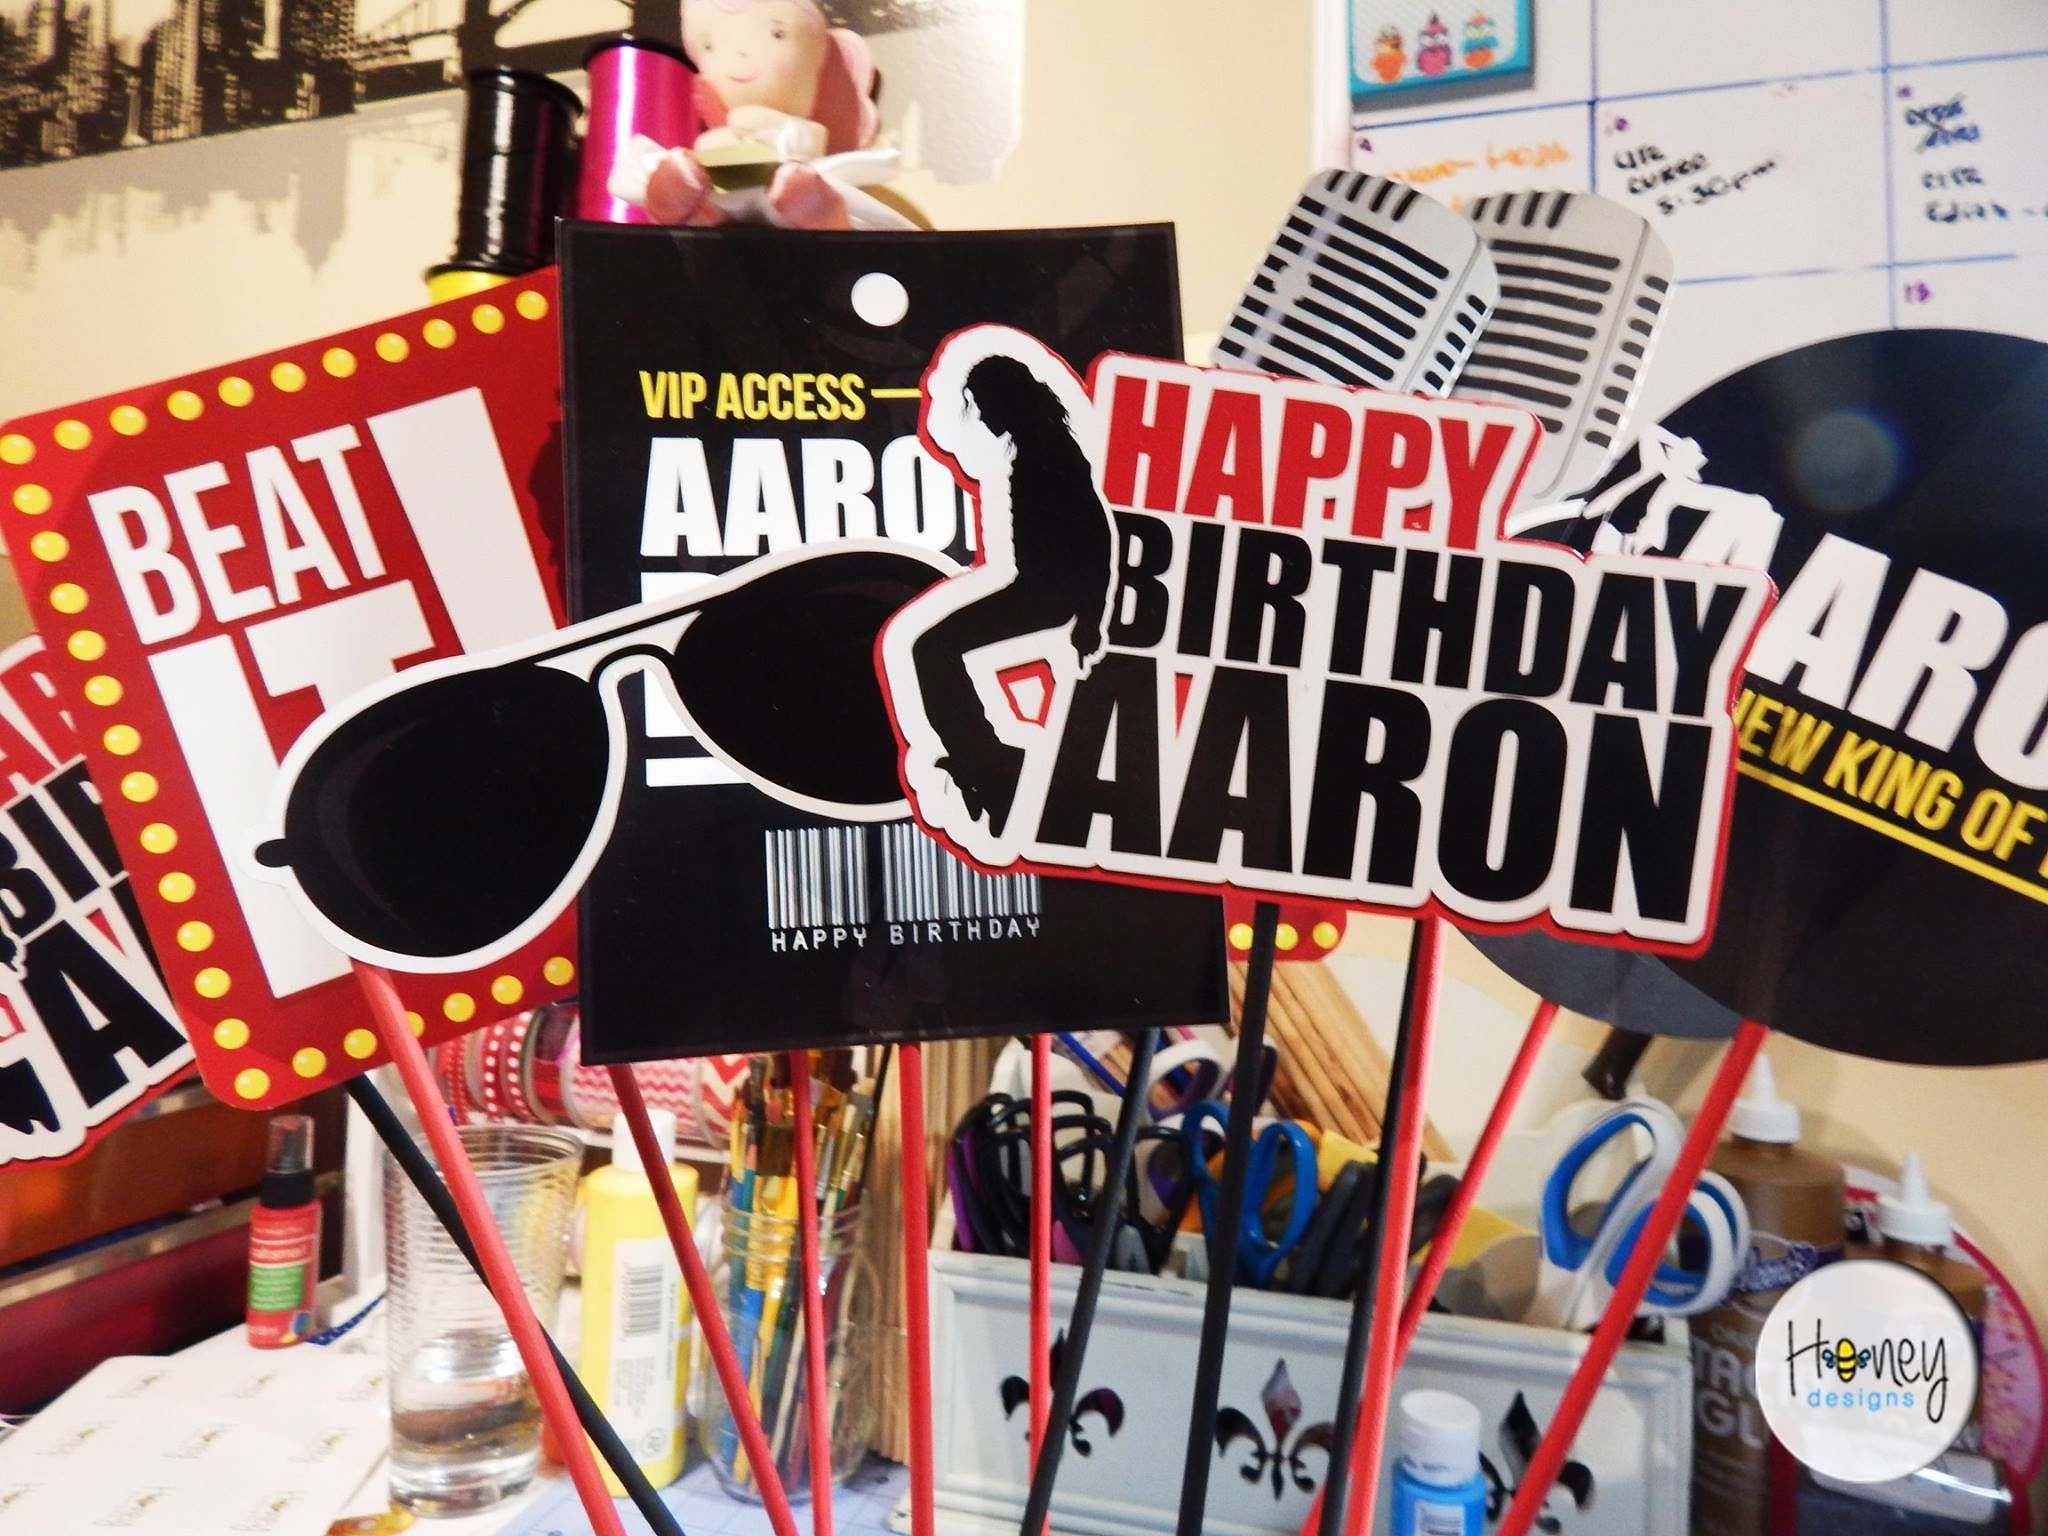 Michael Jackson Party - Photo Booth Props | Party | Pinterest ...